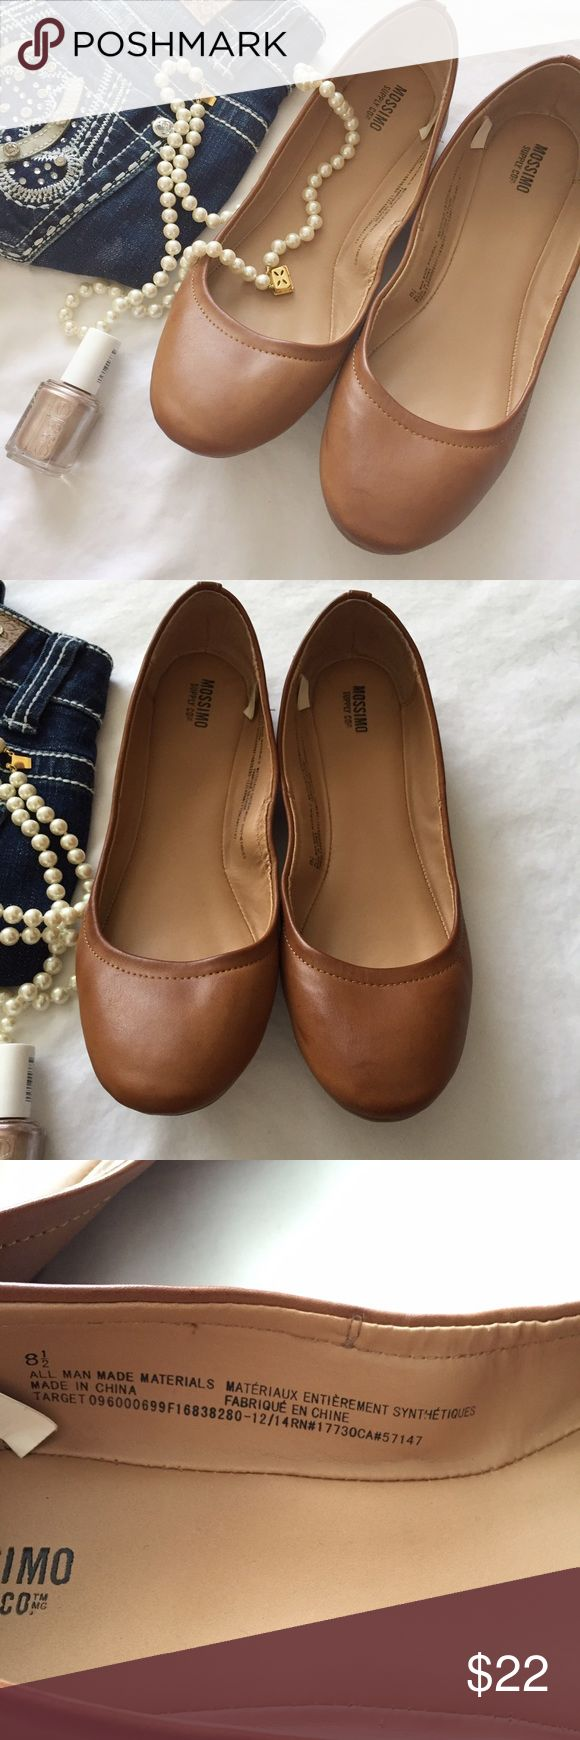 Mossimo brown basic flats Beautiful closet staple! Brown flats that look great with everything from jeans to sundresses to work slacks. These will be your new favorite shoes, for sure! Only worn a couple of times - almost no wear, even on the sole. Mossimo Supply Co. Shoes Flats & Loafers